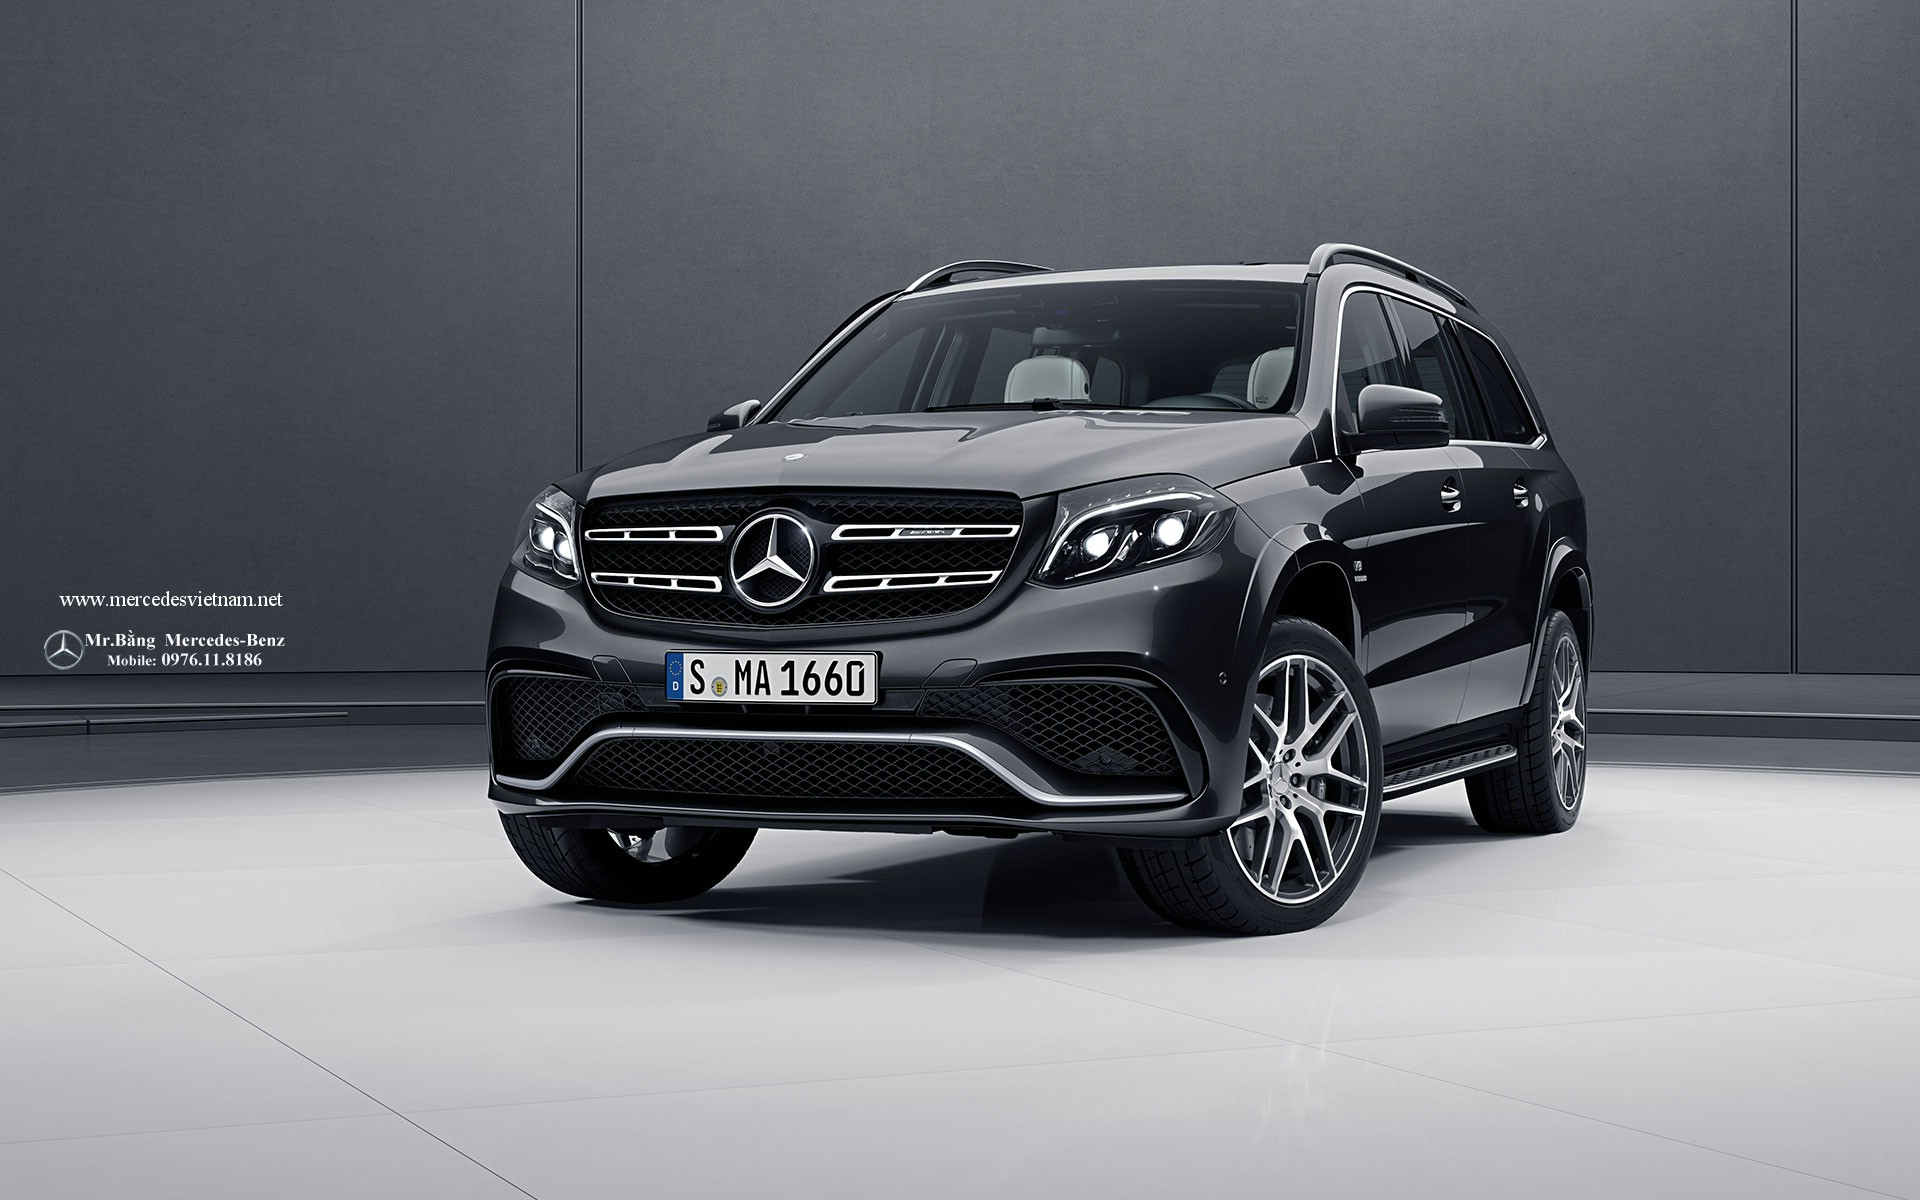 Mercedes AMG GLS 63 4Matic 2016 2017 (1)